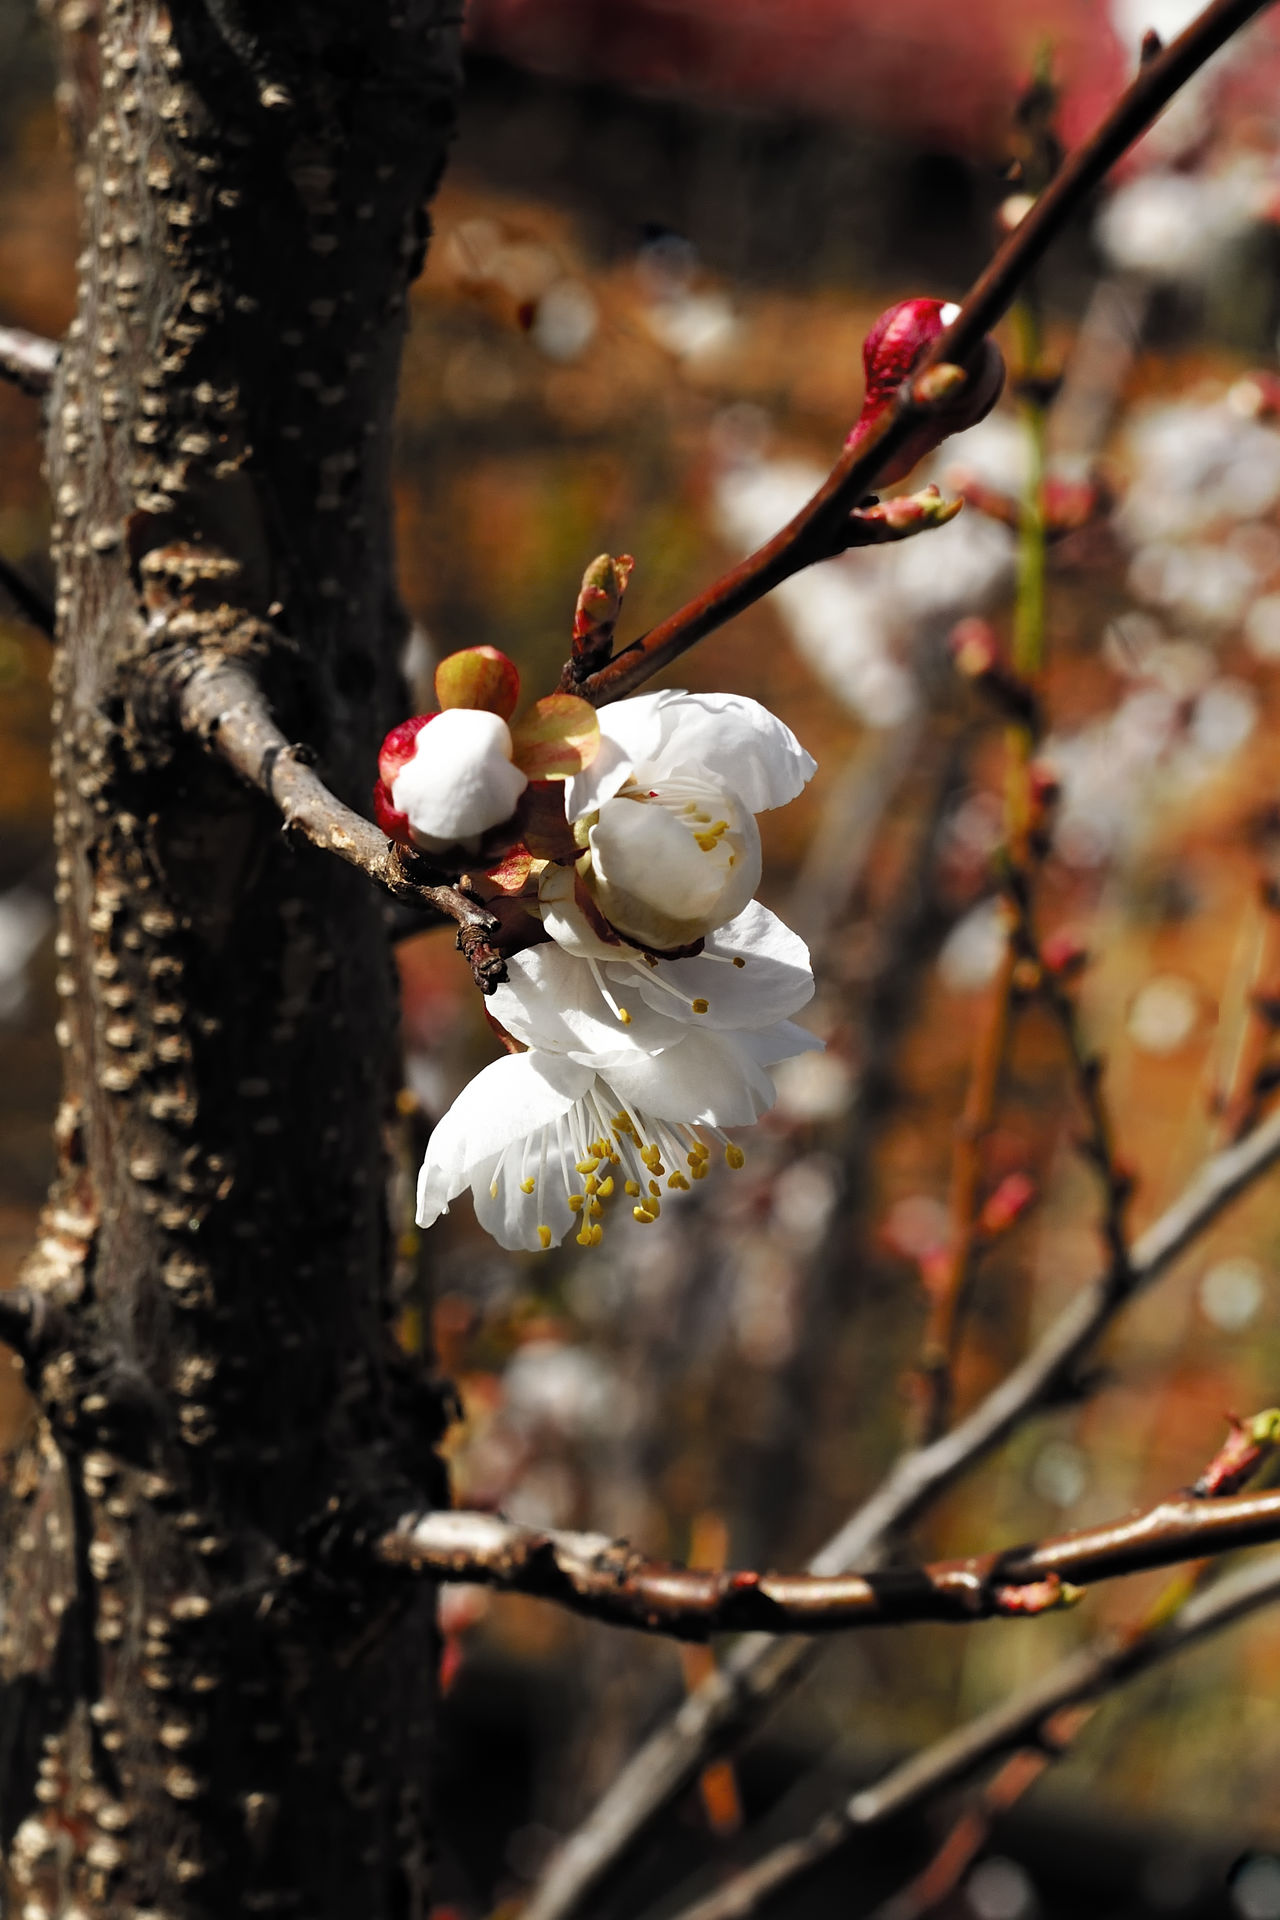 Apricot Apricot Flowers Apricot Tree Beauty In Nature Branch Close-up Day Flower Flower Head Focus On Foreground Fragility Freshness Growth Nature No People Outdoors Petal Springtime Tree Twig White Color